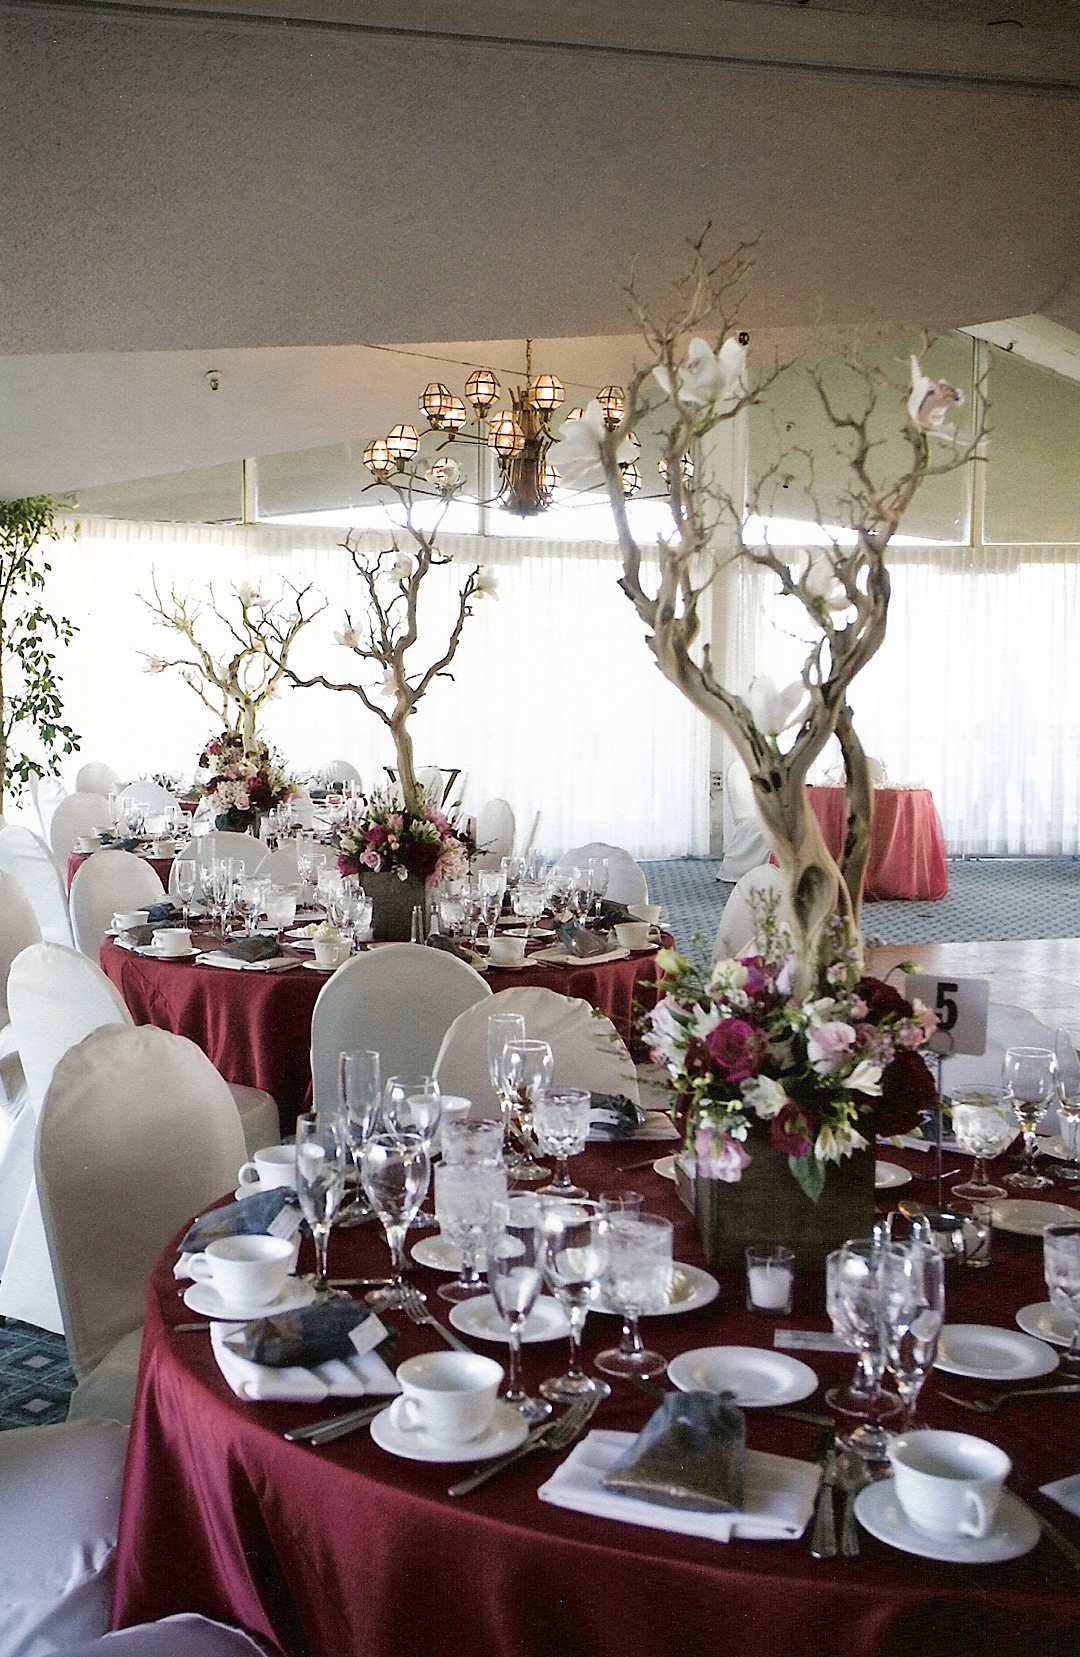 Reception, Flowers & Decor, Centerpieces, Flowers, Centerpiece, Branches